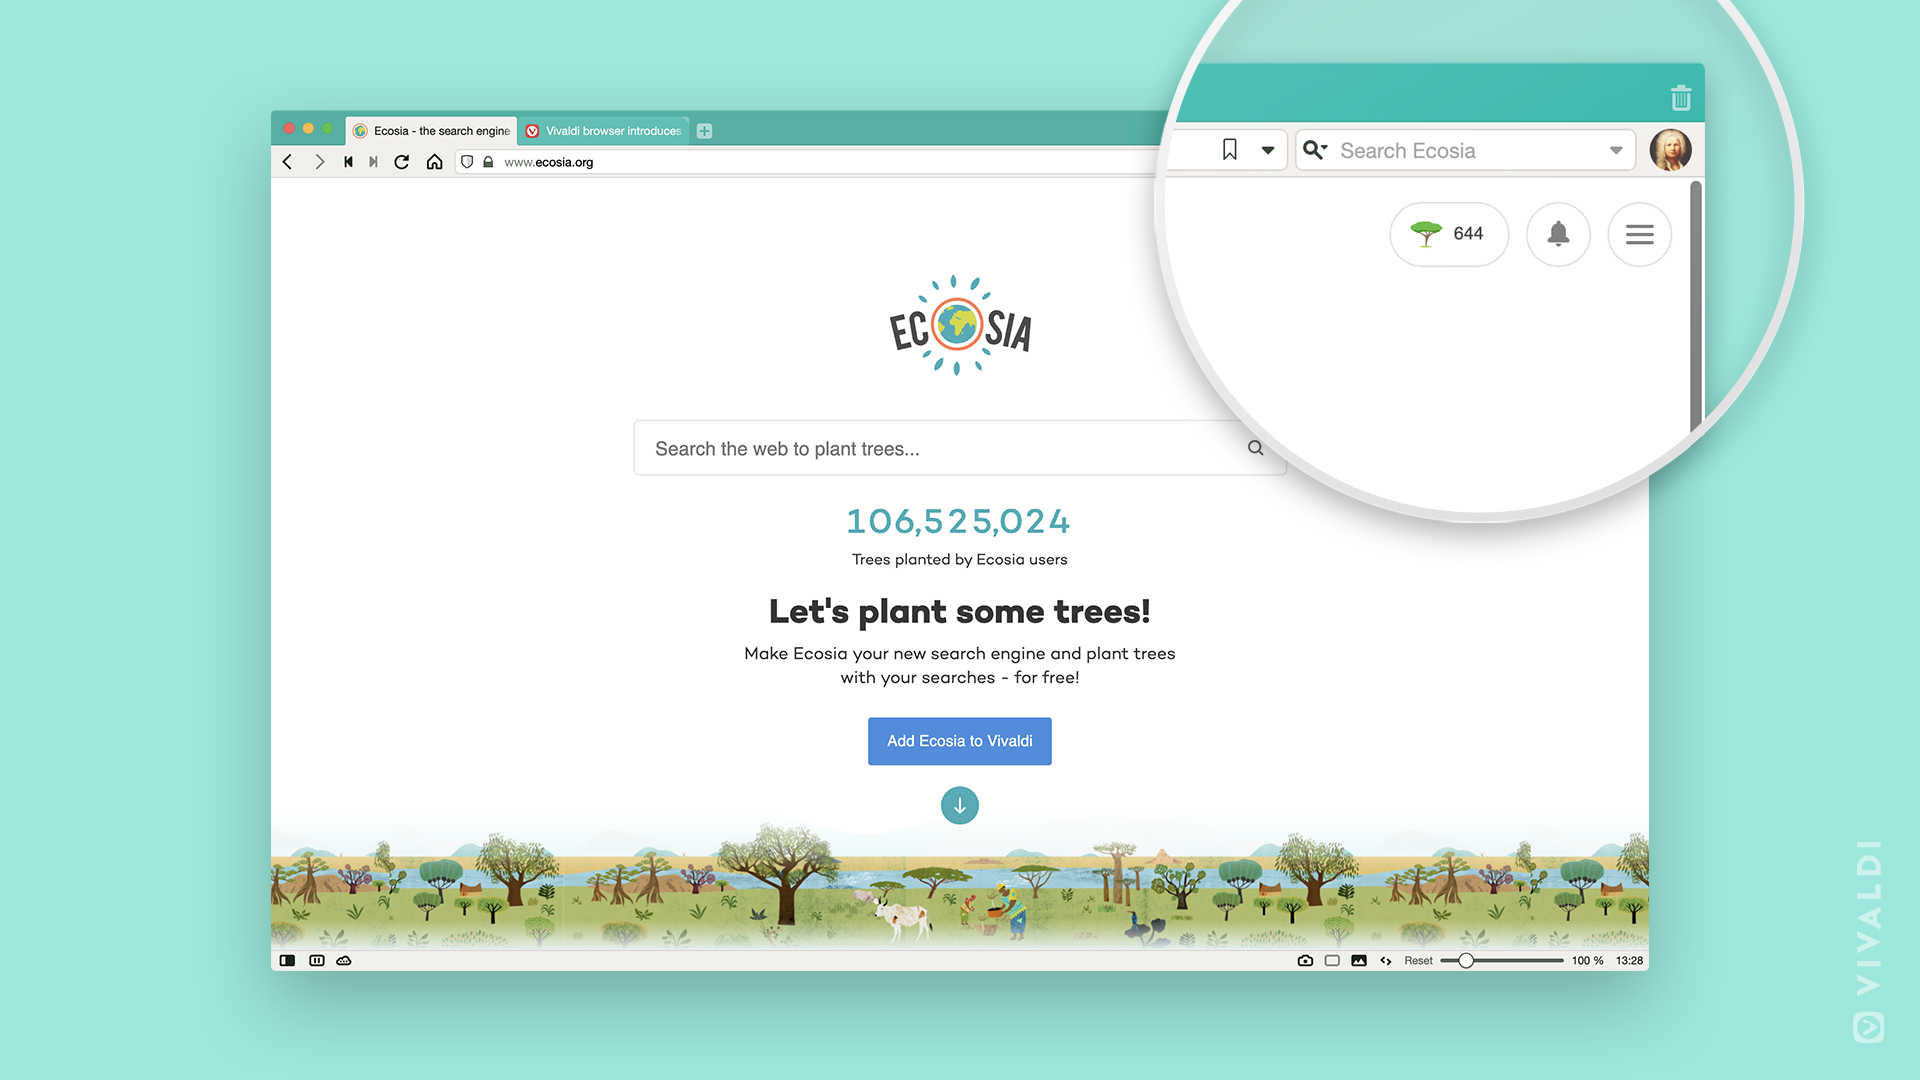 Ecosia is motivational as a work from home productivity tool